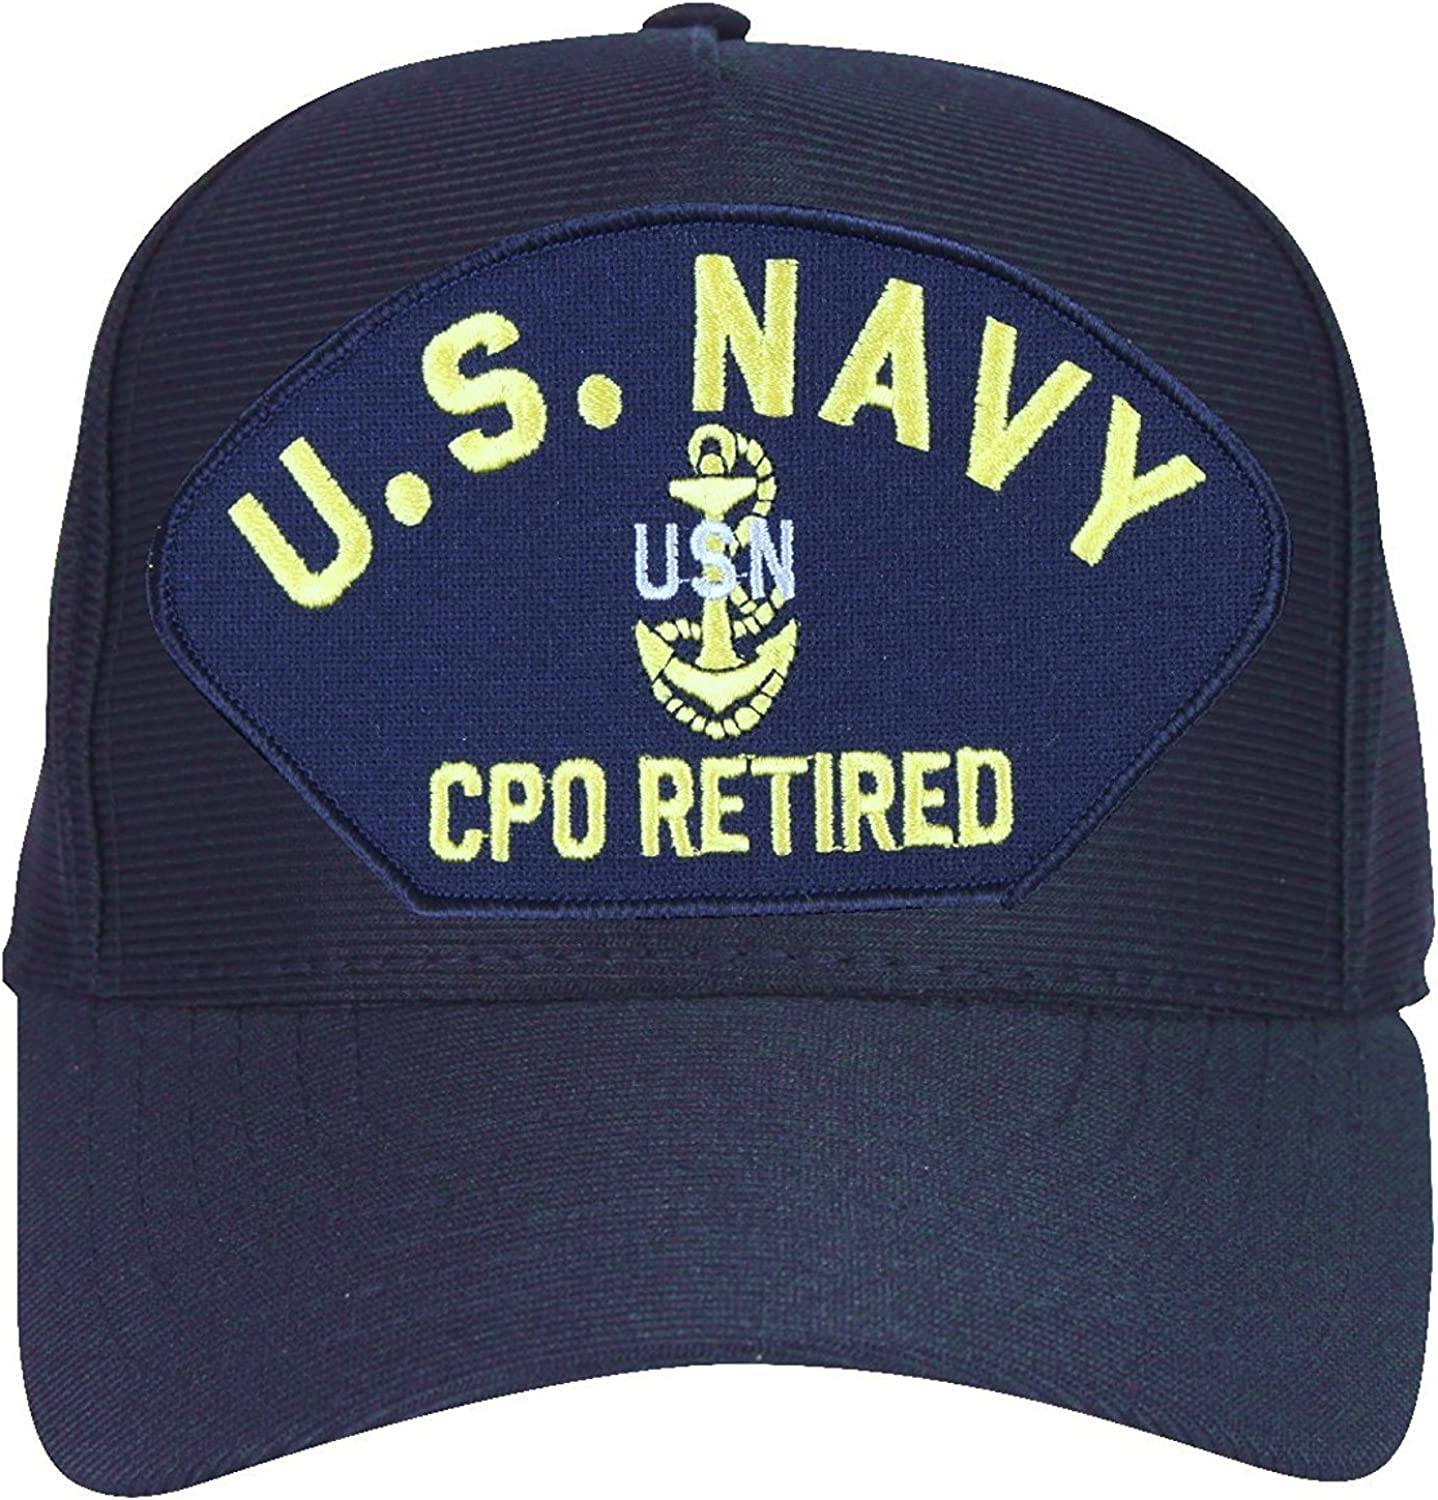 Made in USA U.S Navy Blue Navy CPO Retired with Anchor Baseball Cap